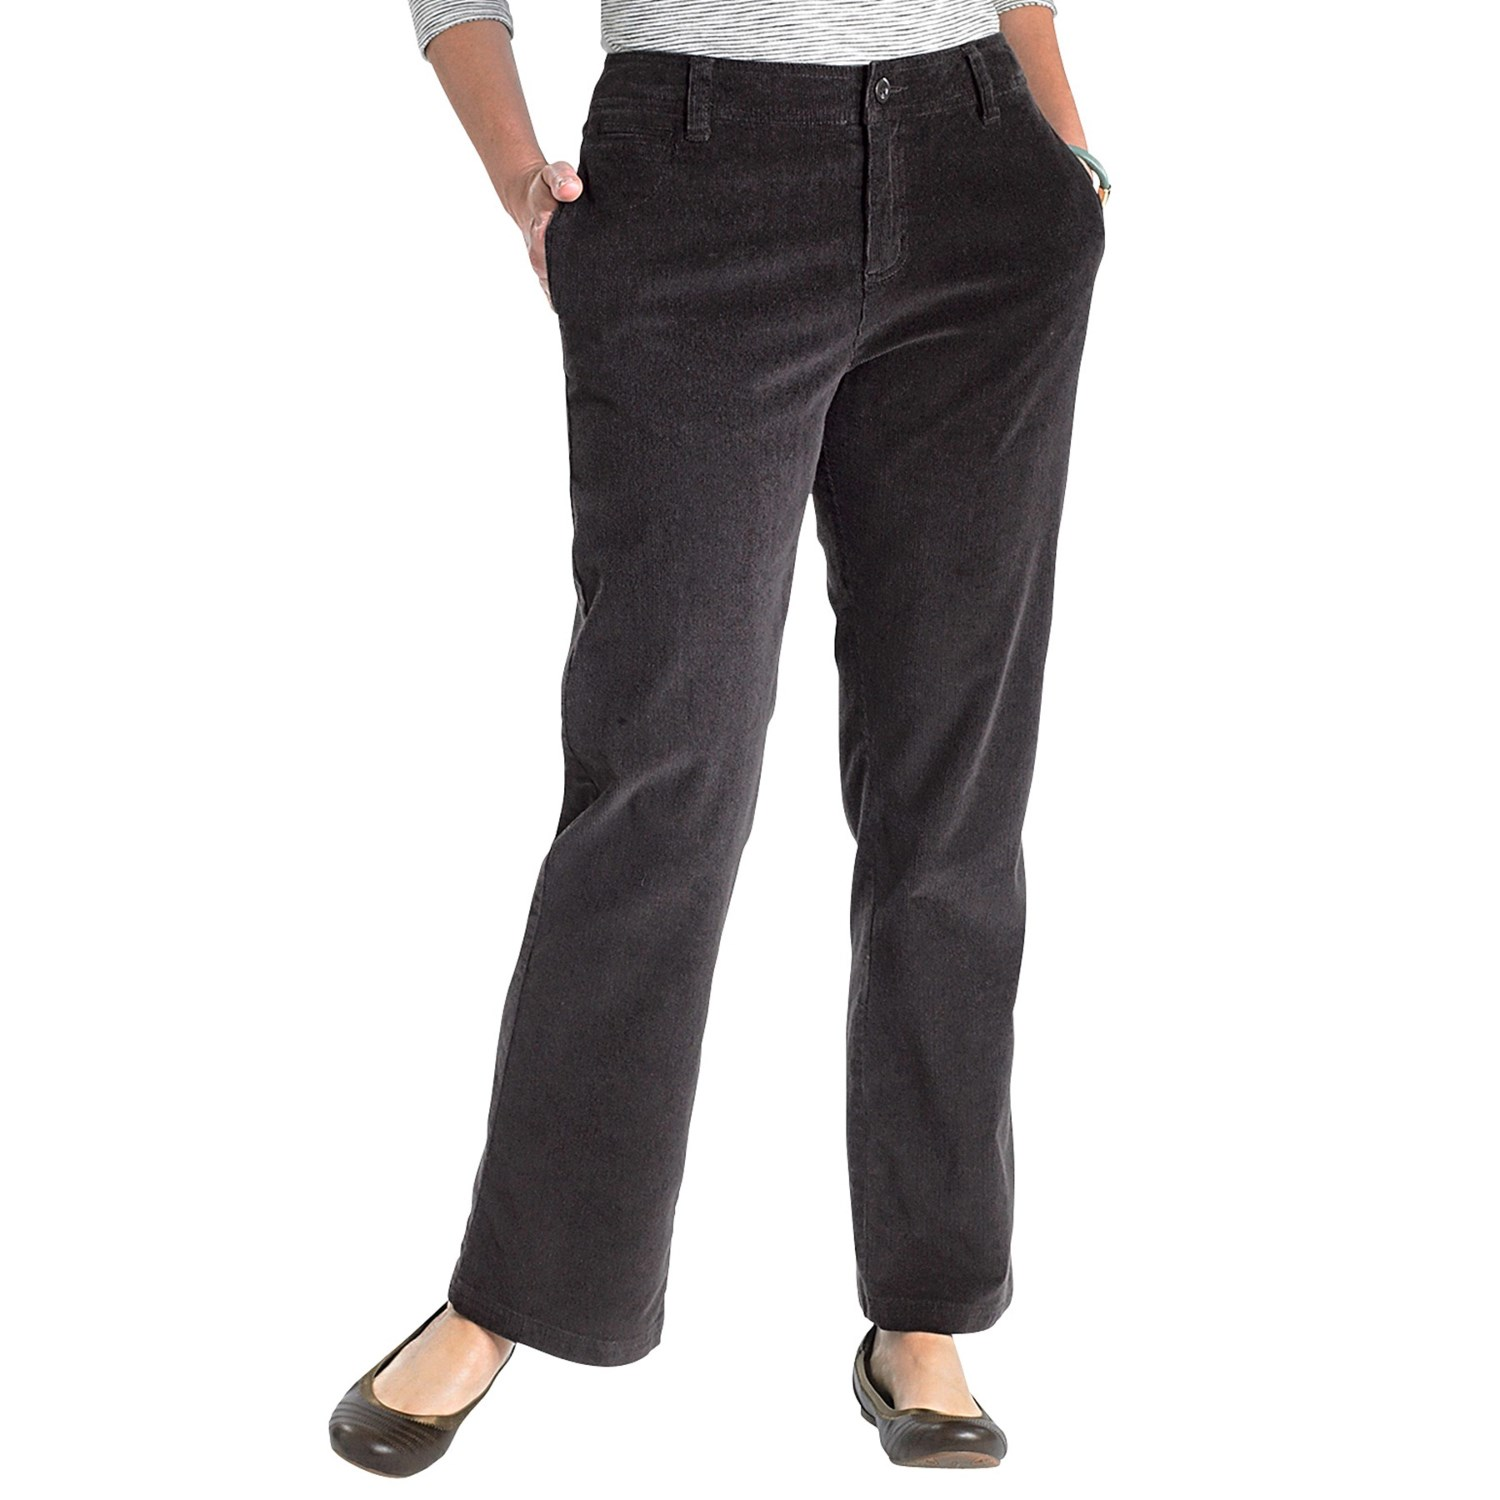 KAREN SCOTT Womens New Black Corduroy Casual Pants L Petites B+B. Sold by BOBBI + BRICKA. STYLE & COMPANY $65 Womens New Black Corduroy Mid Rise Pants 20W Plus B+B. Sold by BOBBI + BRICKA. $ $ STYLE & COMPANY $48 Womens New Black Corduroy Mid Rise Pants 24W Plus B+B.